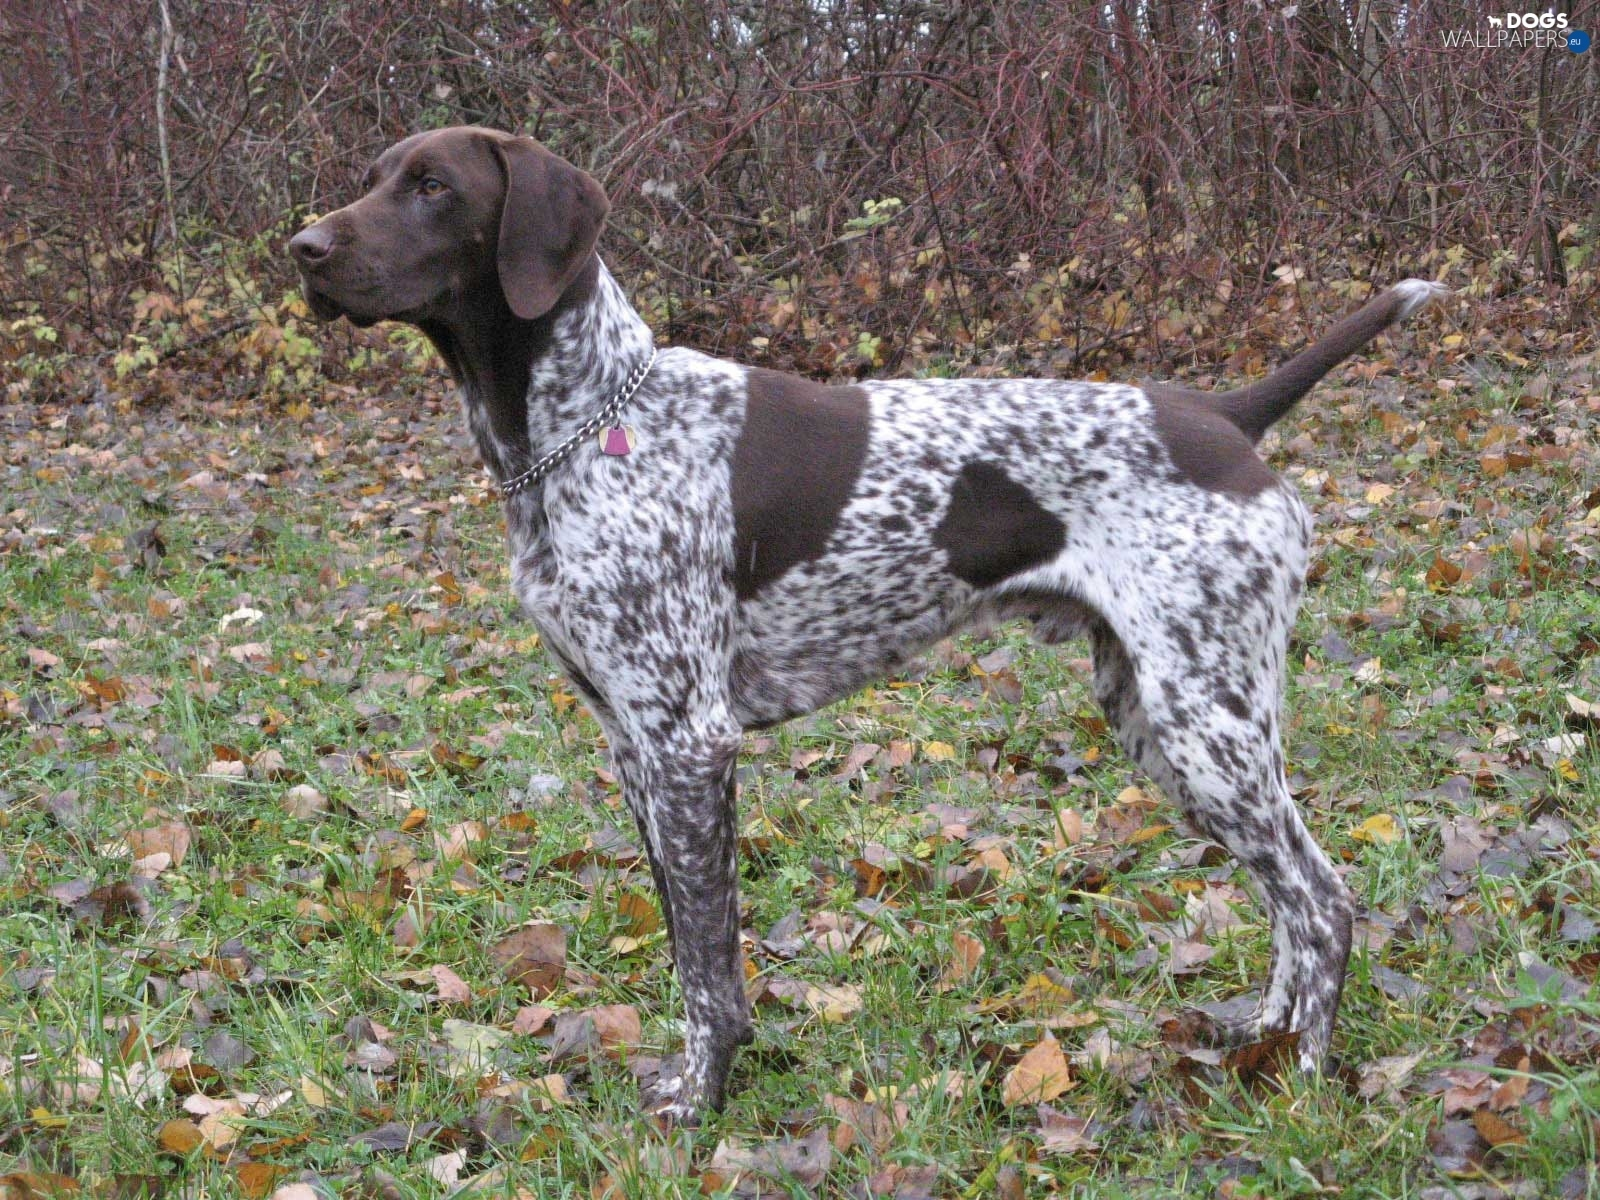 autumn, German Shorthaired Pointer - Dogs wallpapers: 1600x1200 German Wirehaired Pointer Training Videos